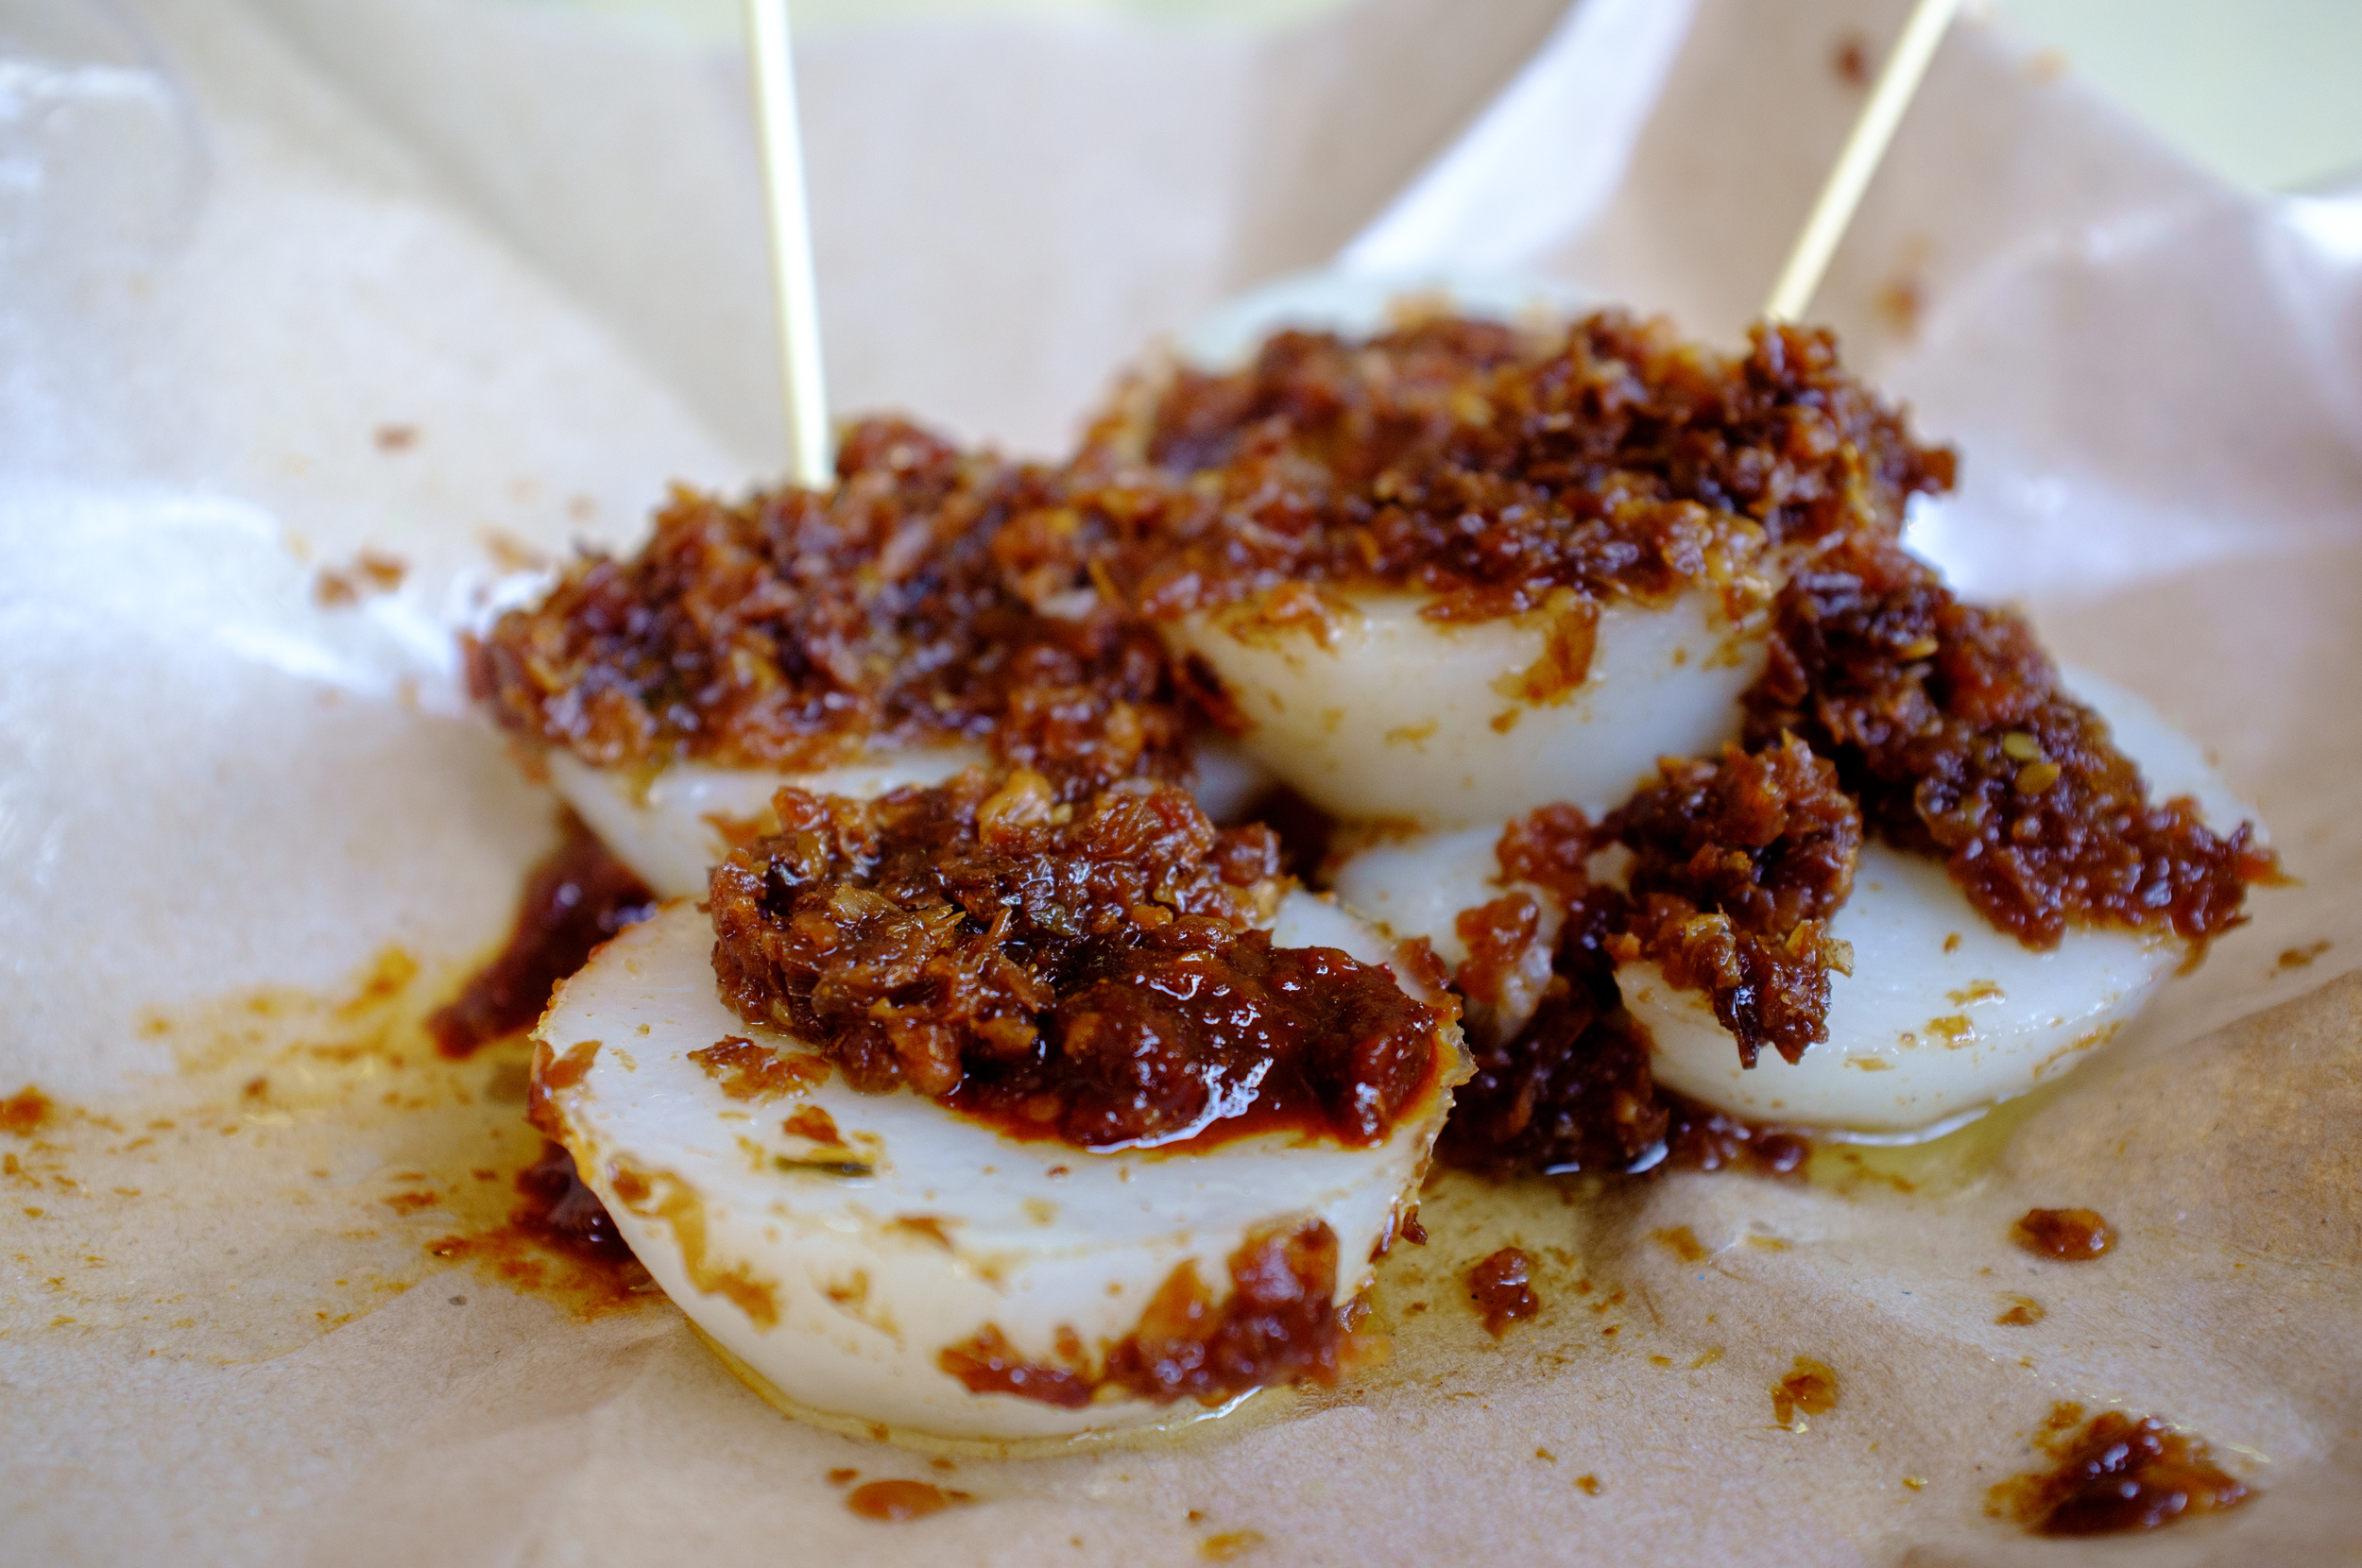 Chwee kueh , a steamed rice cake topped with preserved radish, a popular breakfast item, costs less than $2 US